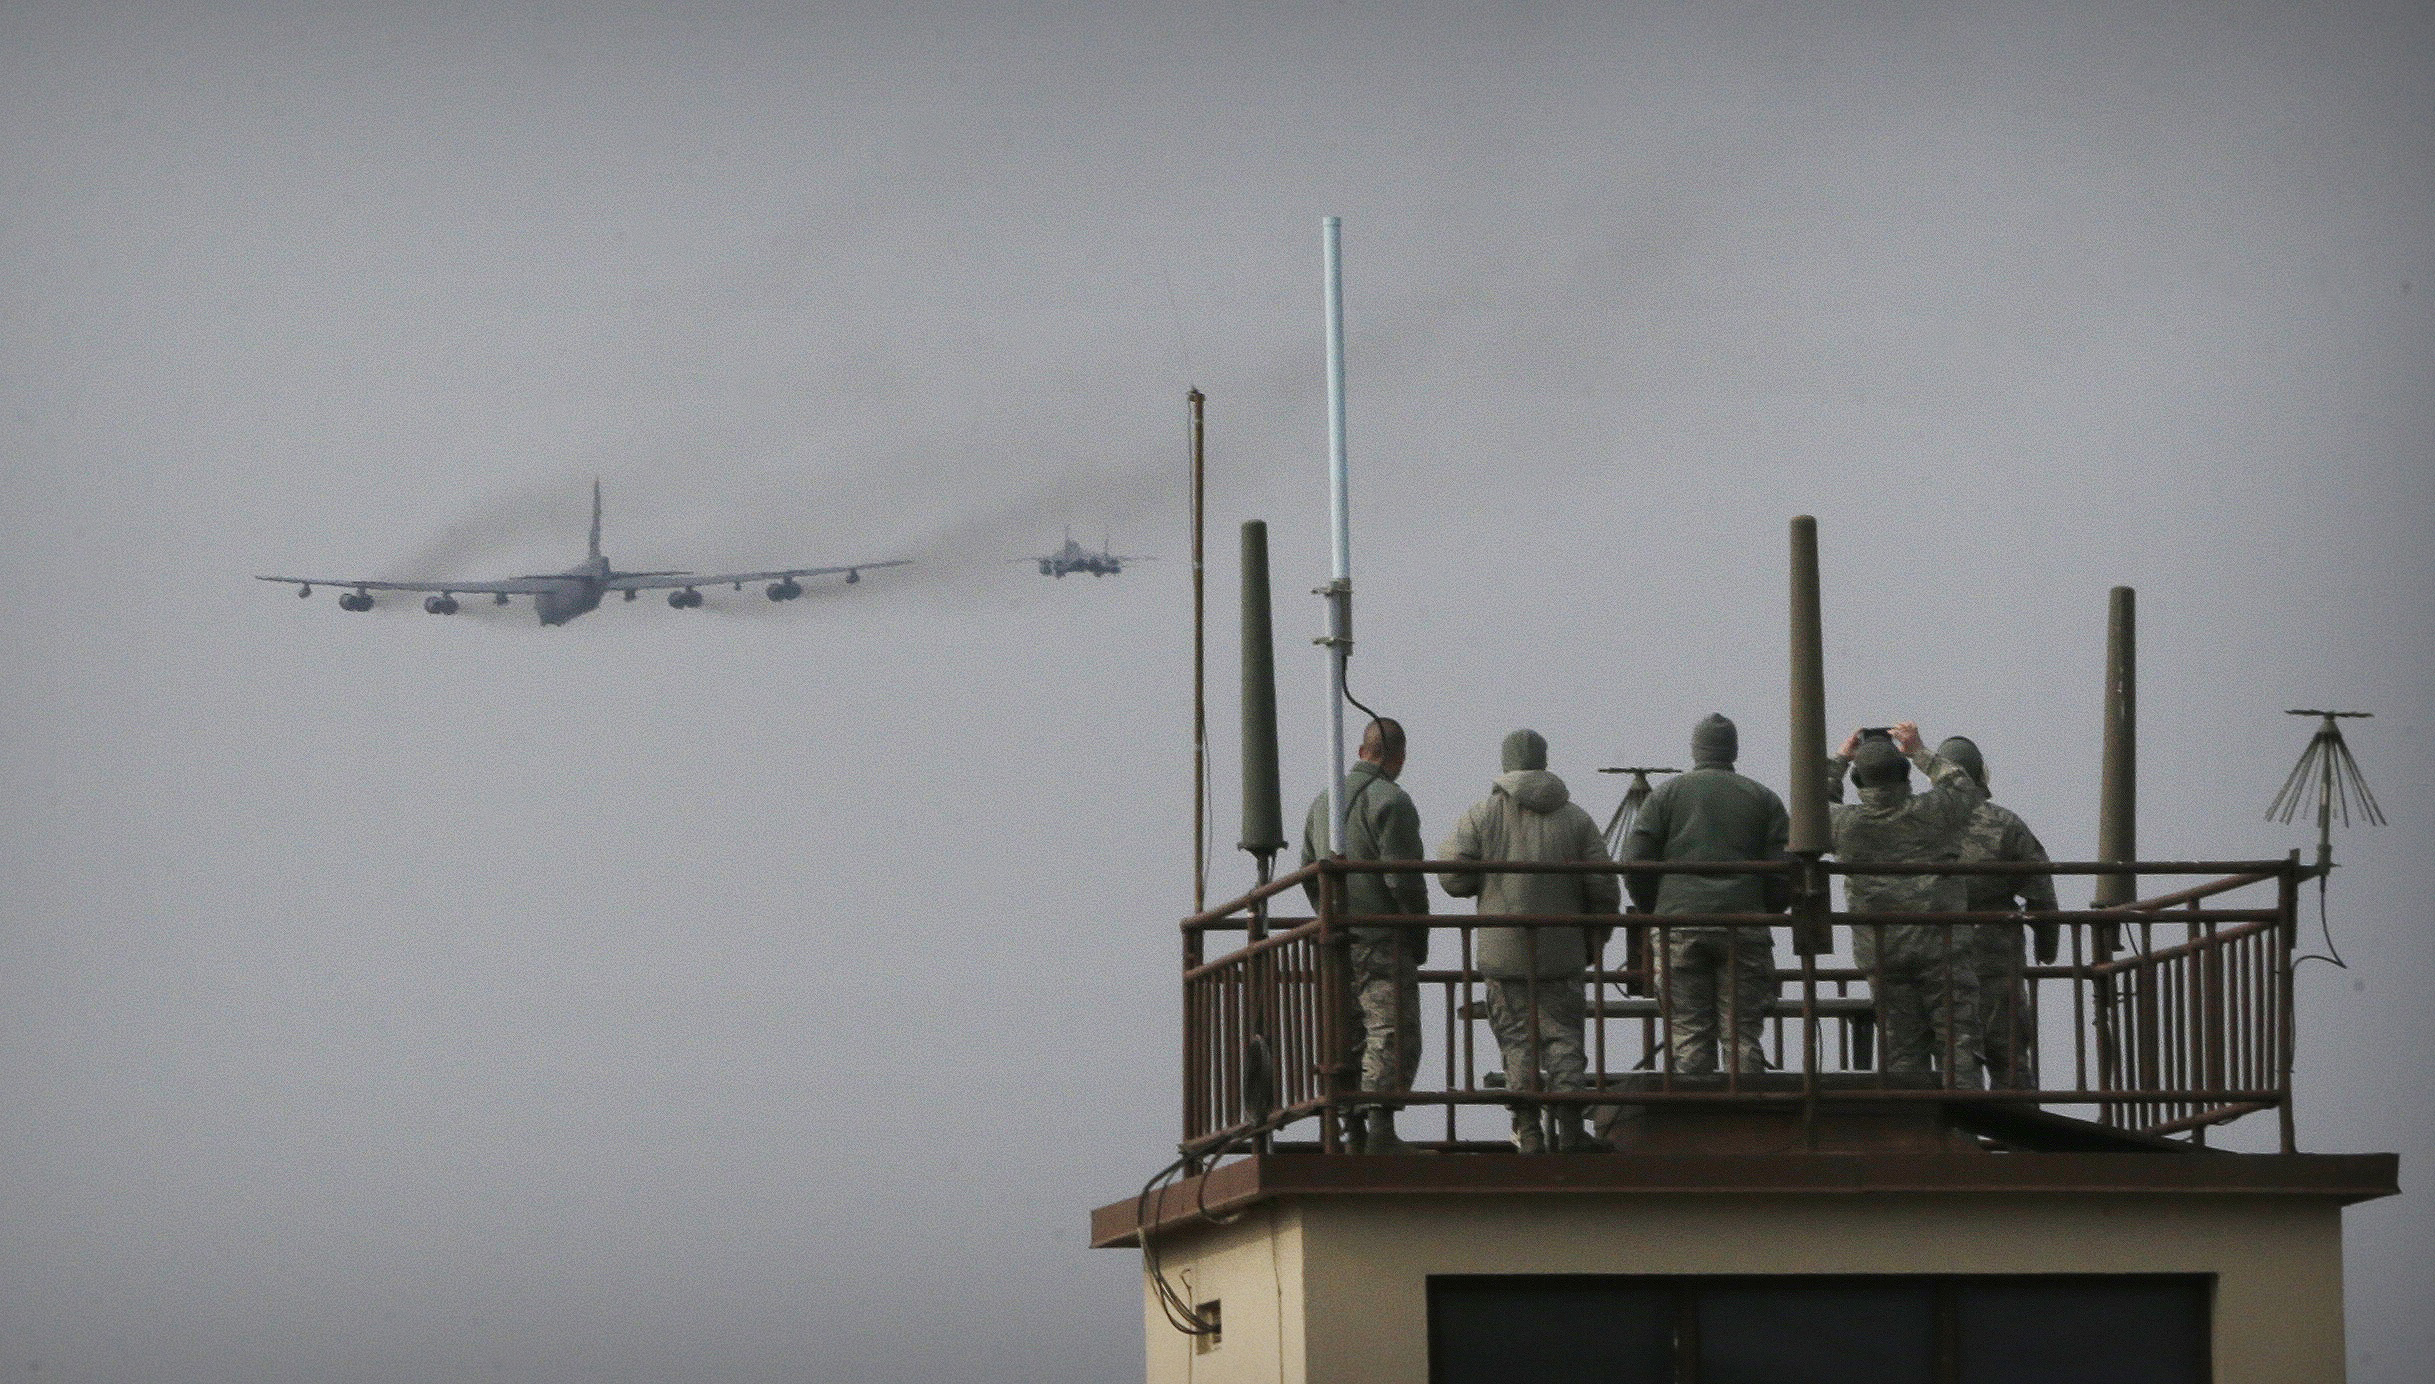 B-52 flyover at Osan Air Base